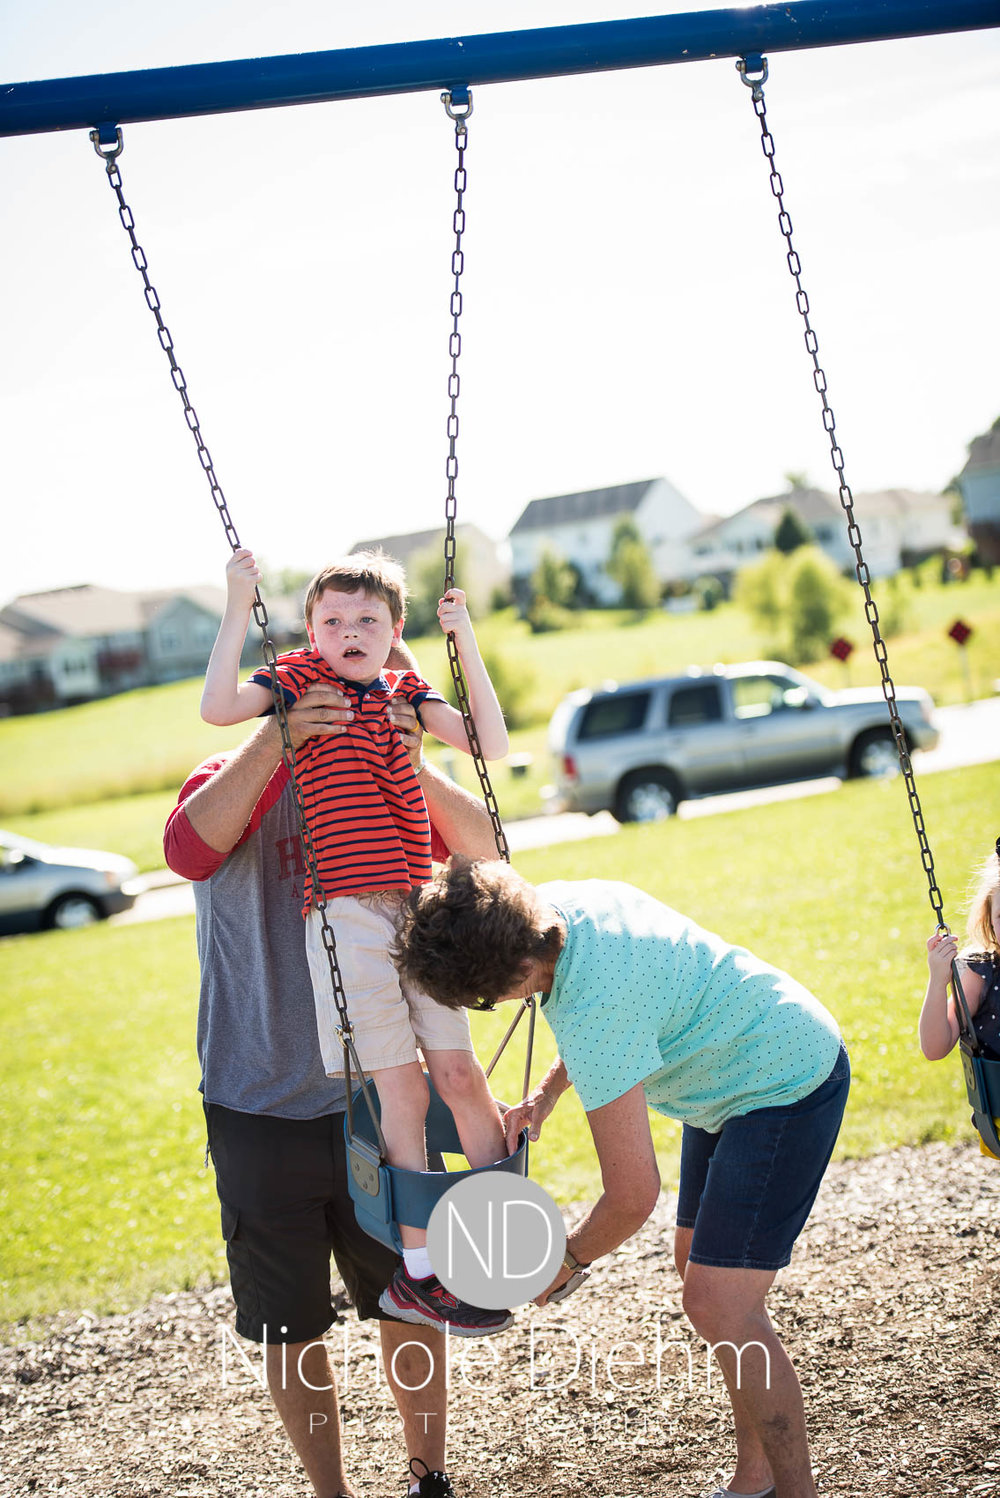 Cedar-Falls-Photographer-Nichole-Diehm-Events-100-women-who-care-beaus-beautiful-blessings-place-to-play-park-greenhill-villiage106.jpg